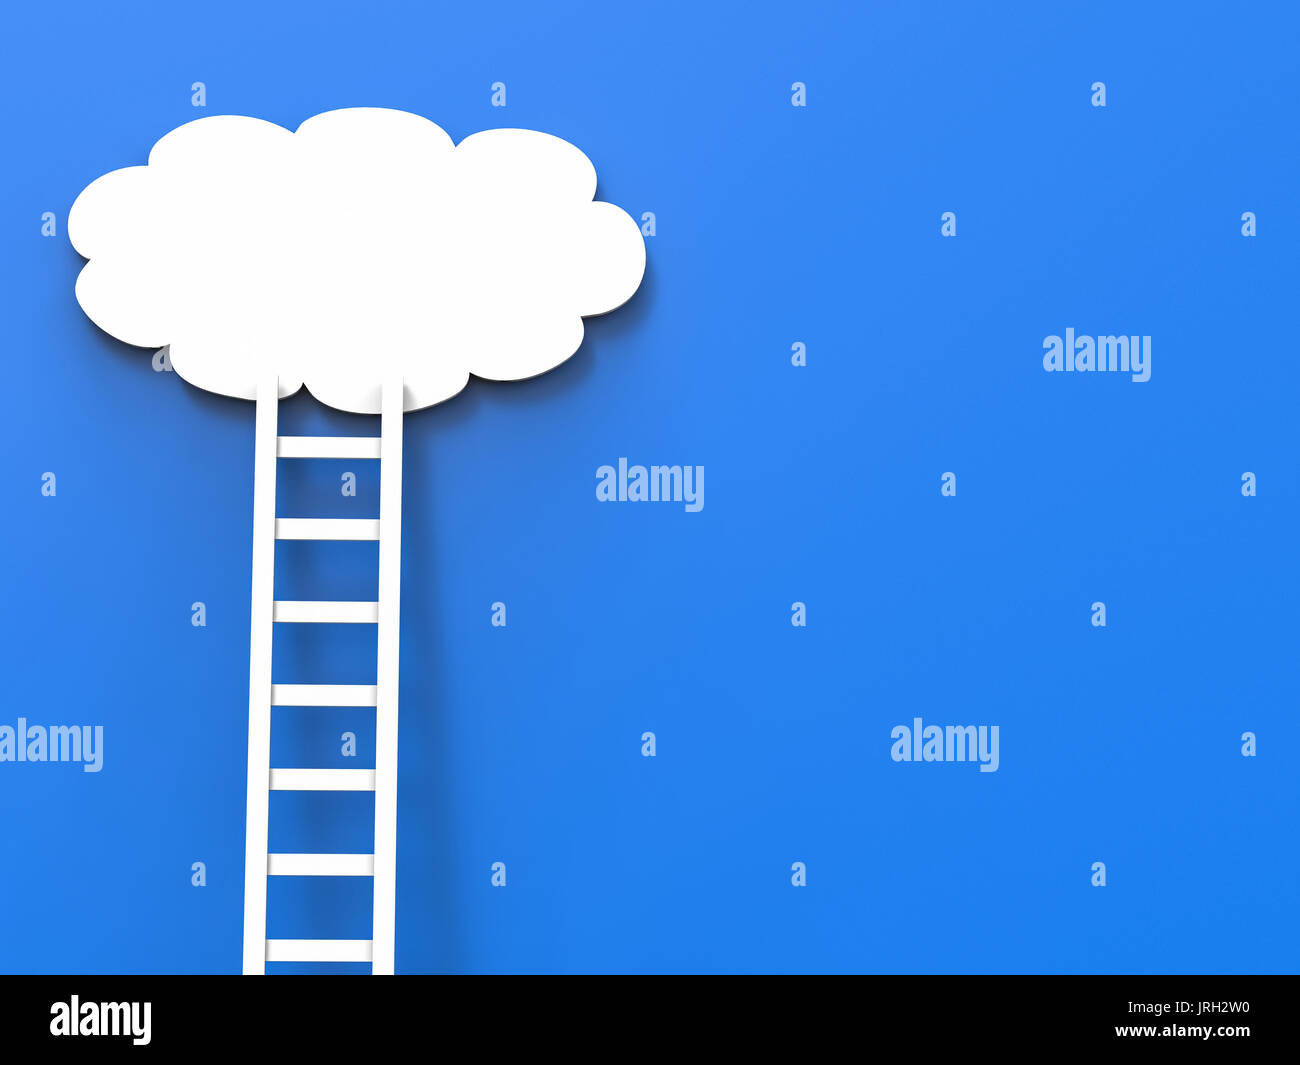 ladder of success concept with white clouds on blue background - Stock Image